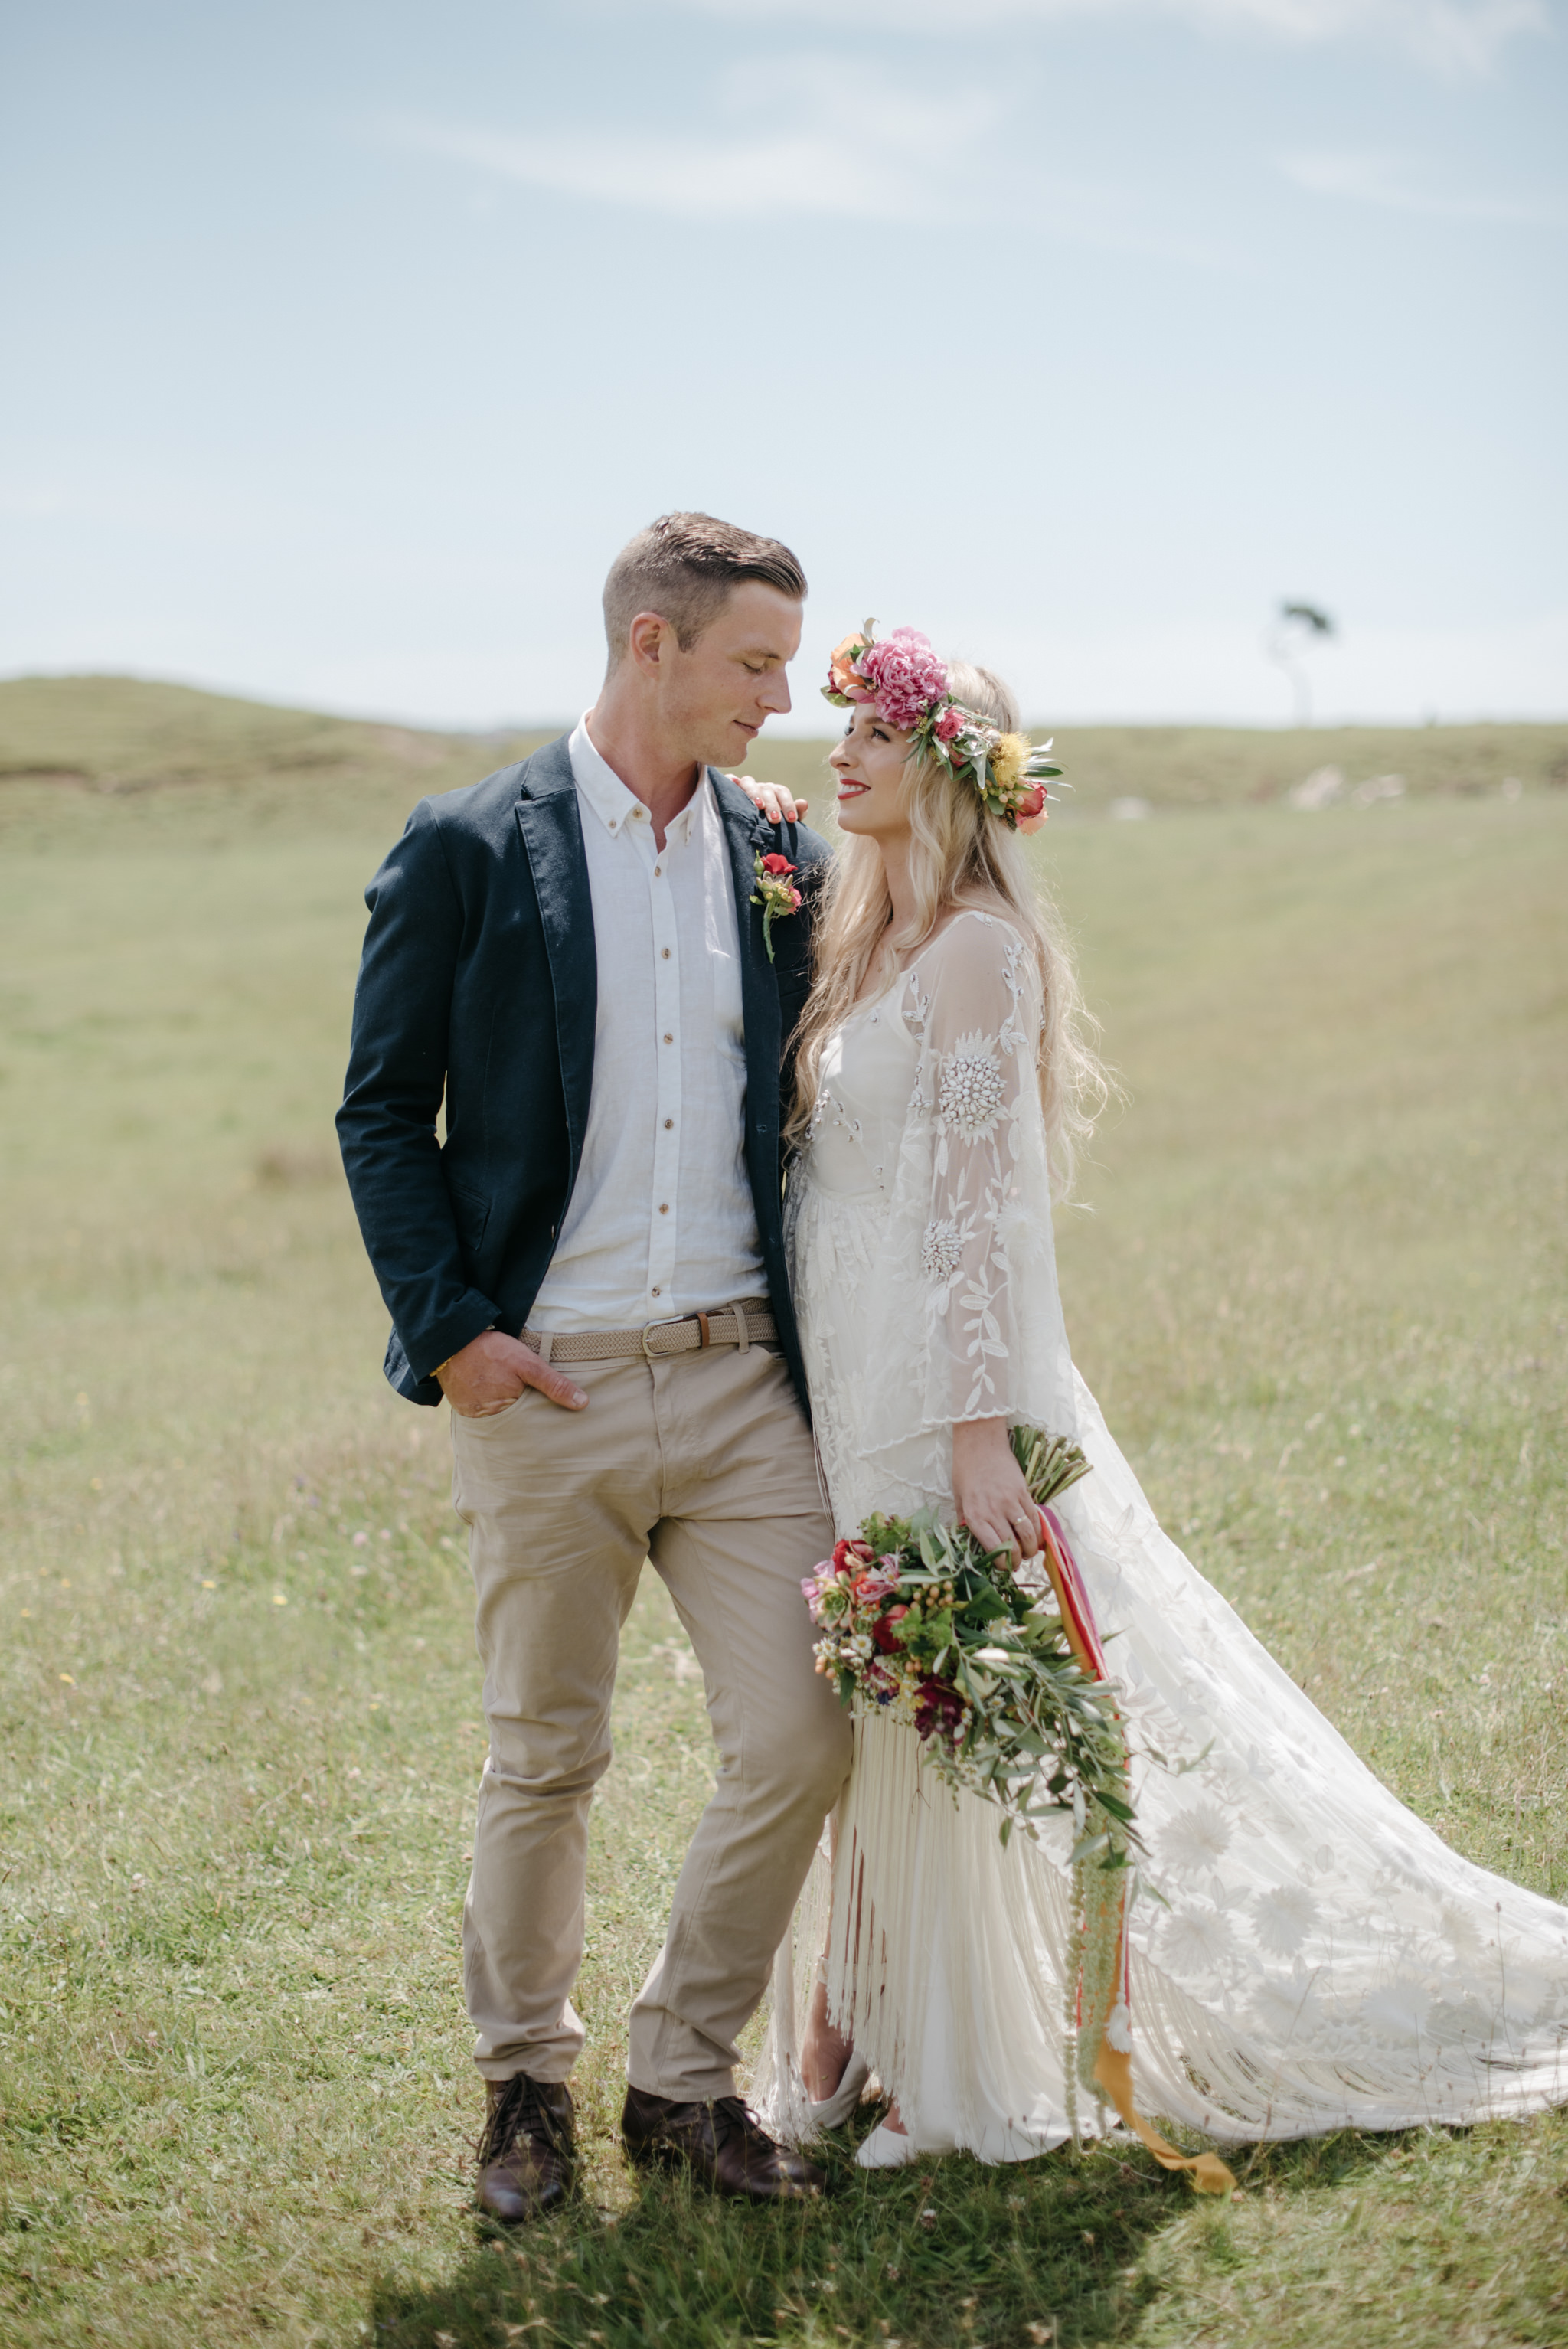 Josie and Ryan EPHEMERAL CREATIVE Jonkers Farm New Zealand Wedding bohemian bride and groom